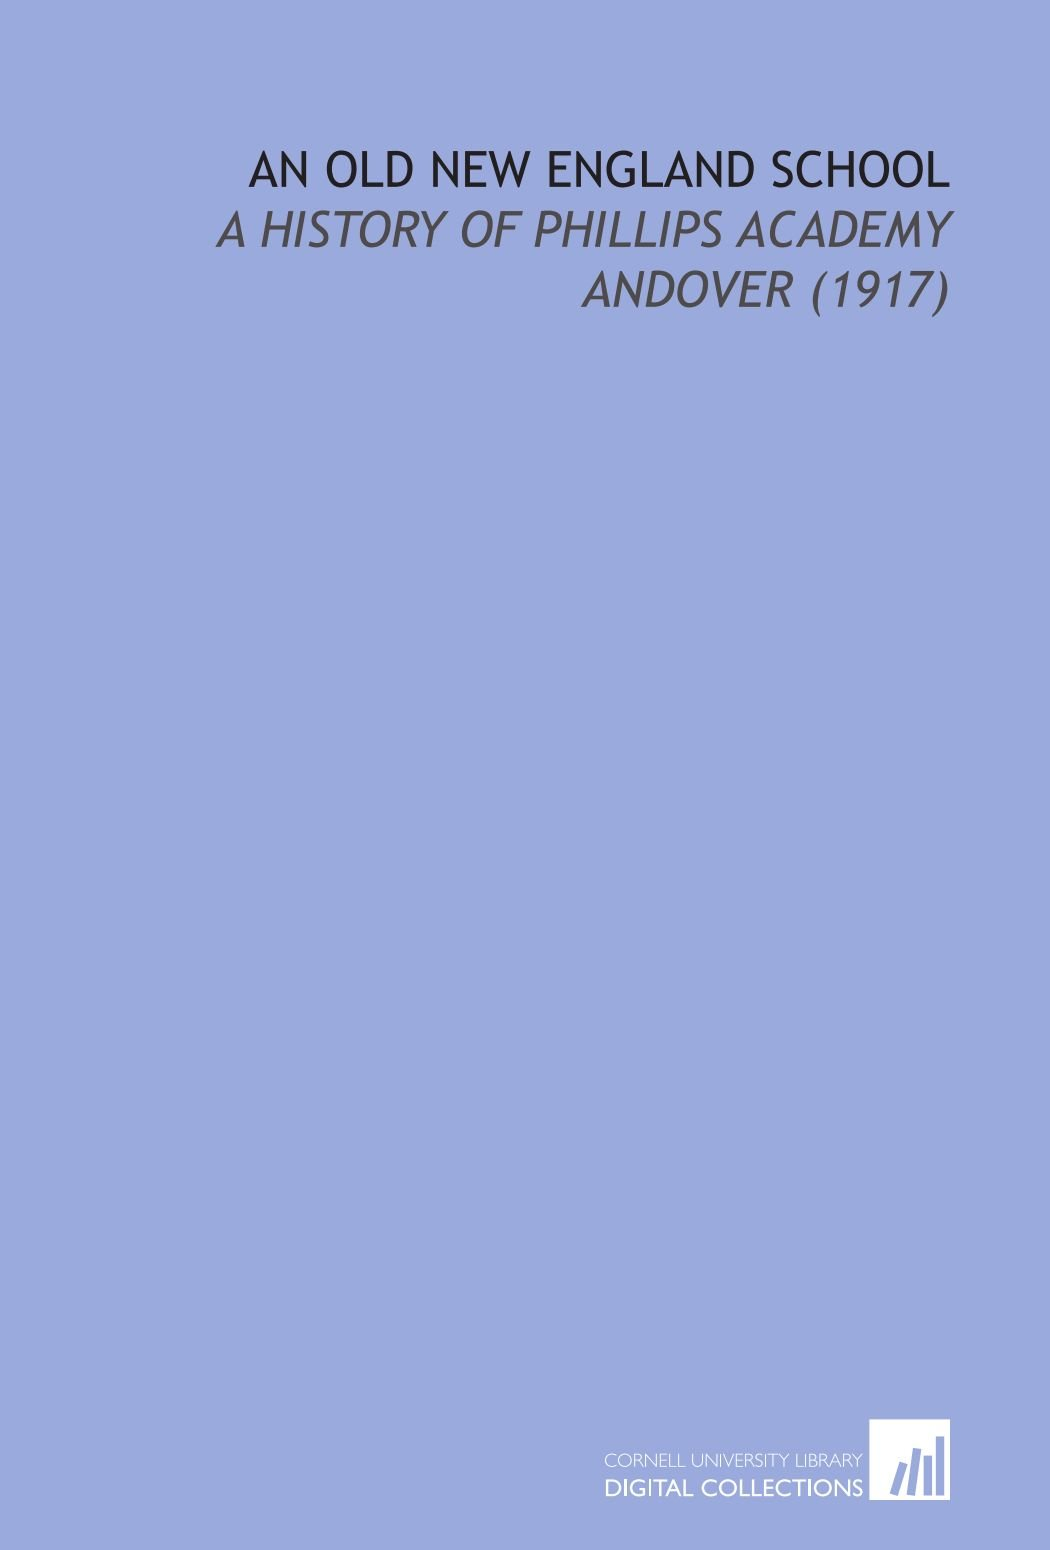 Download An Old New England School: A History of Phillips Academy Andover (1917) PDF